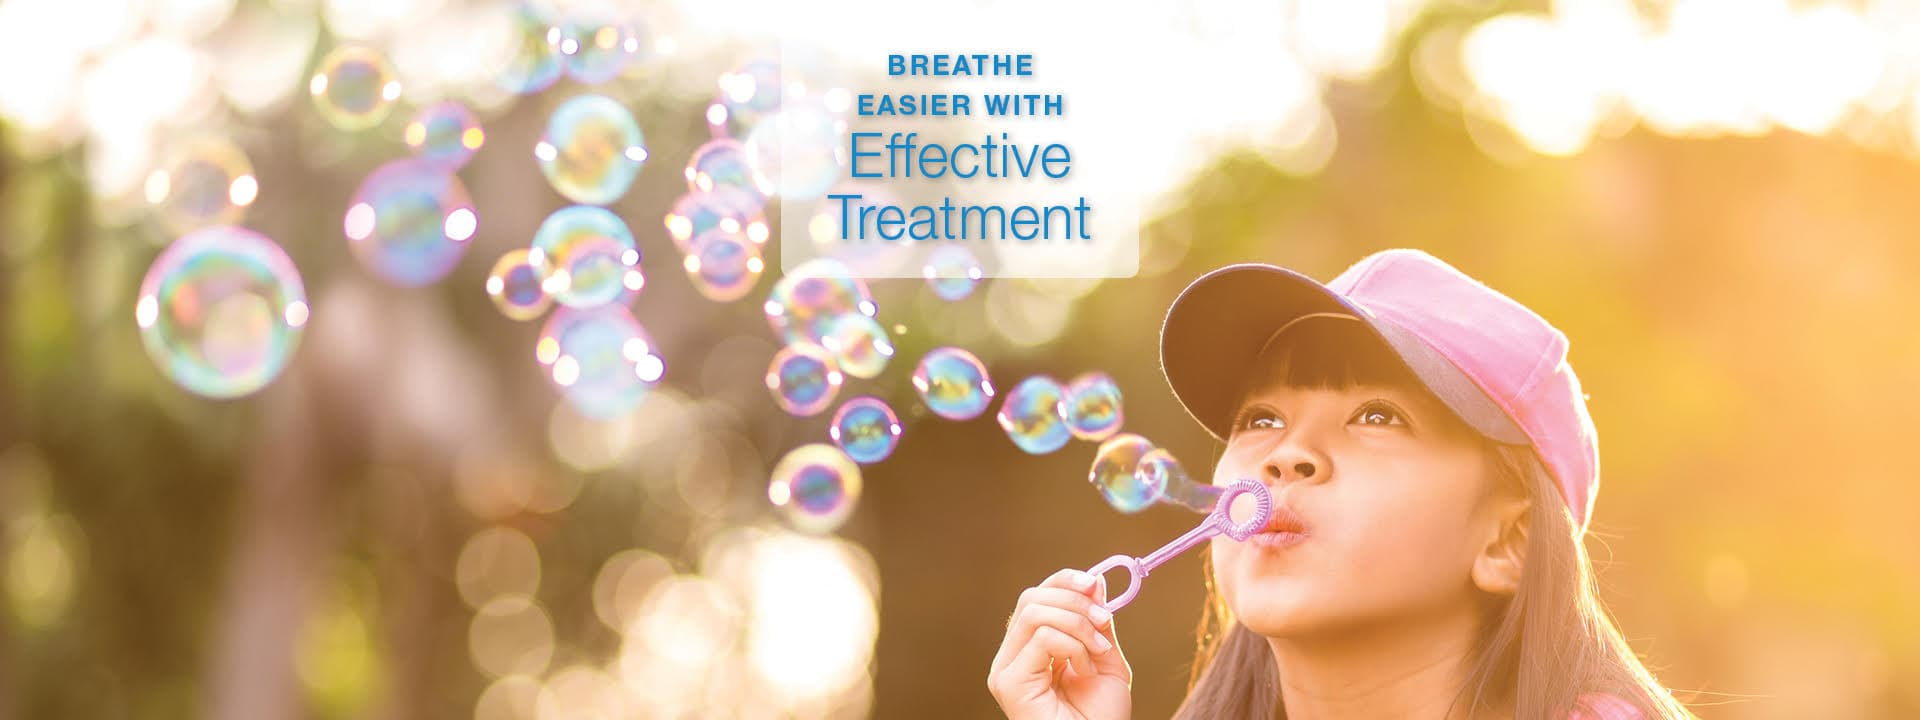 Allergy Asthma Sinus Center Services Lexington KY